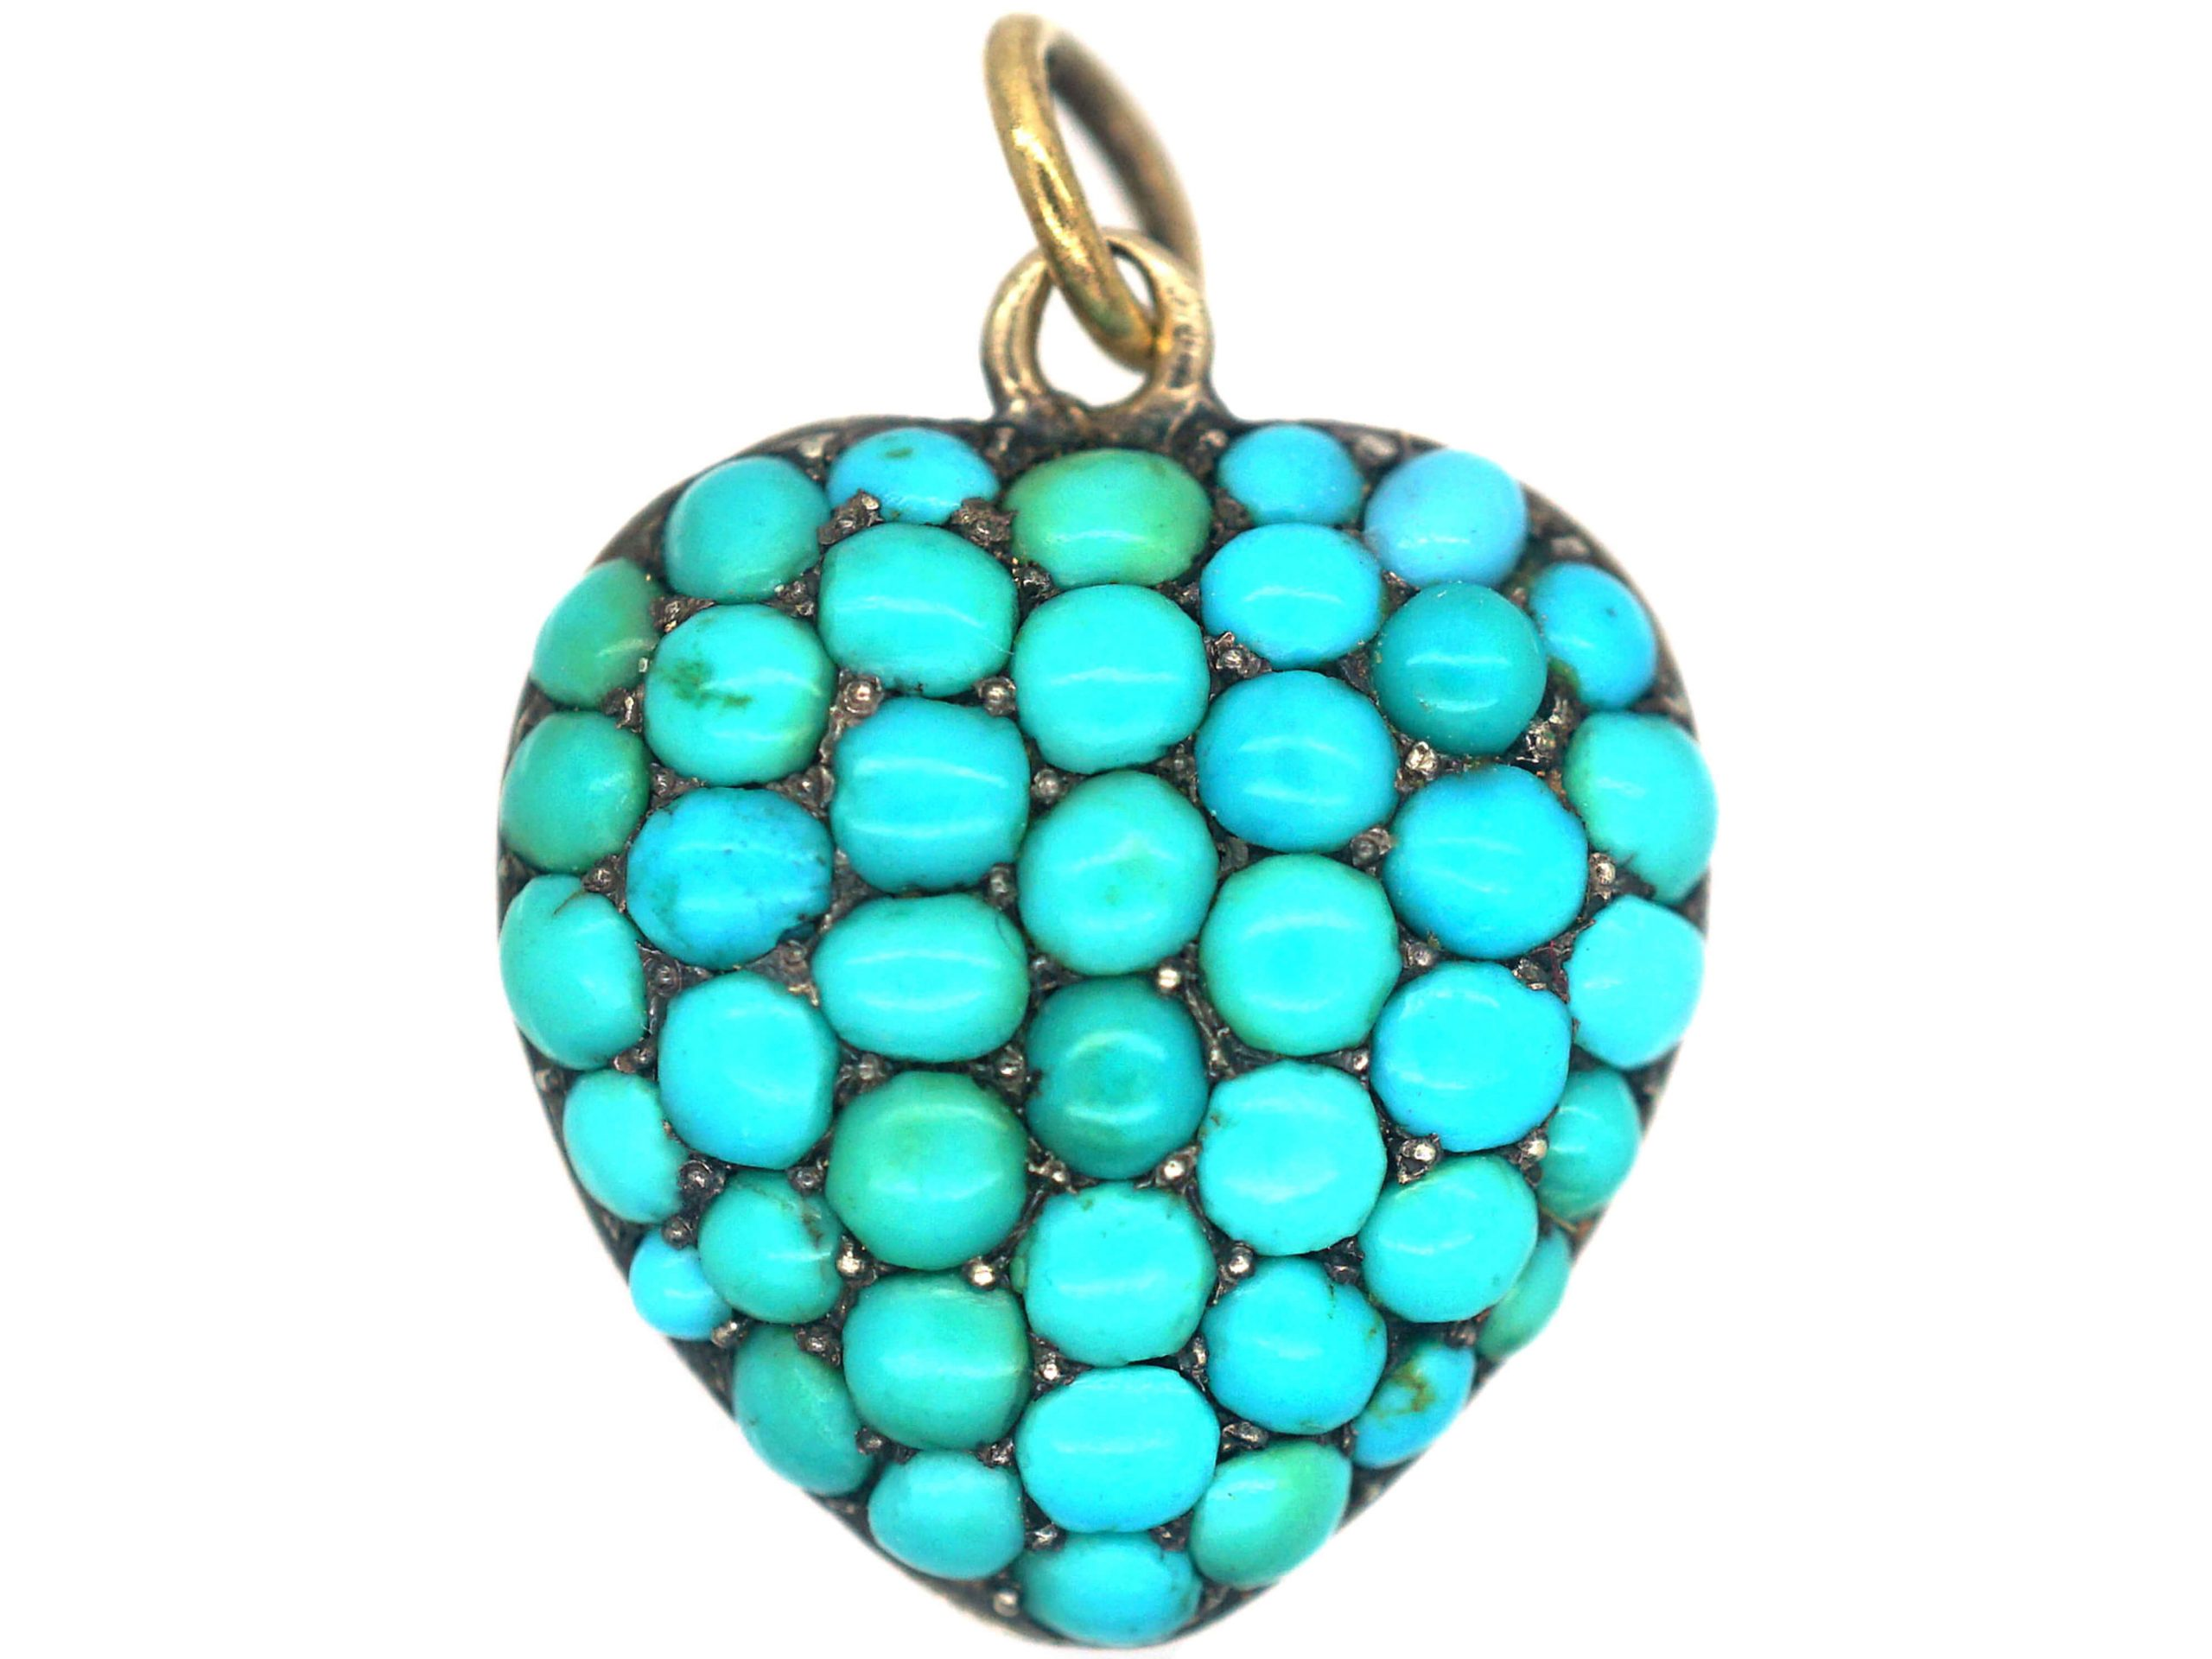 Victorian 15ct Gold & Turquoise Heart Shaped Pendant with Locket on the Reverse